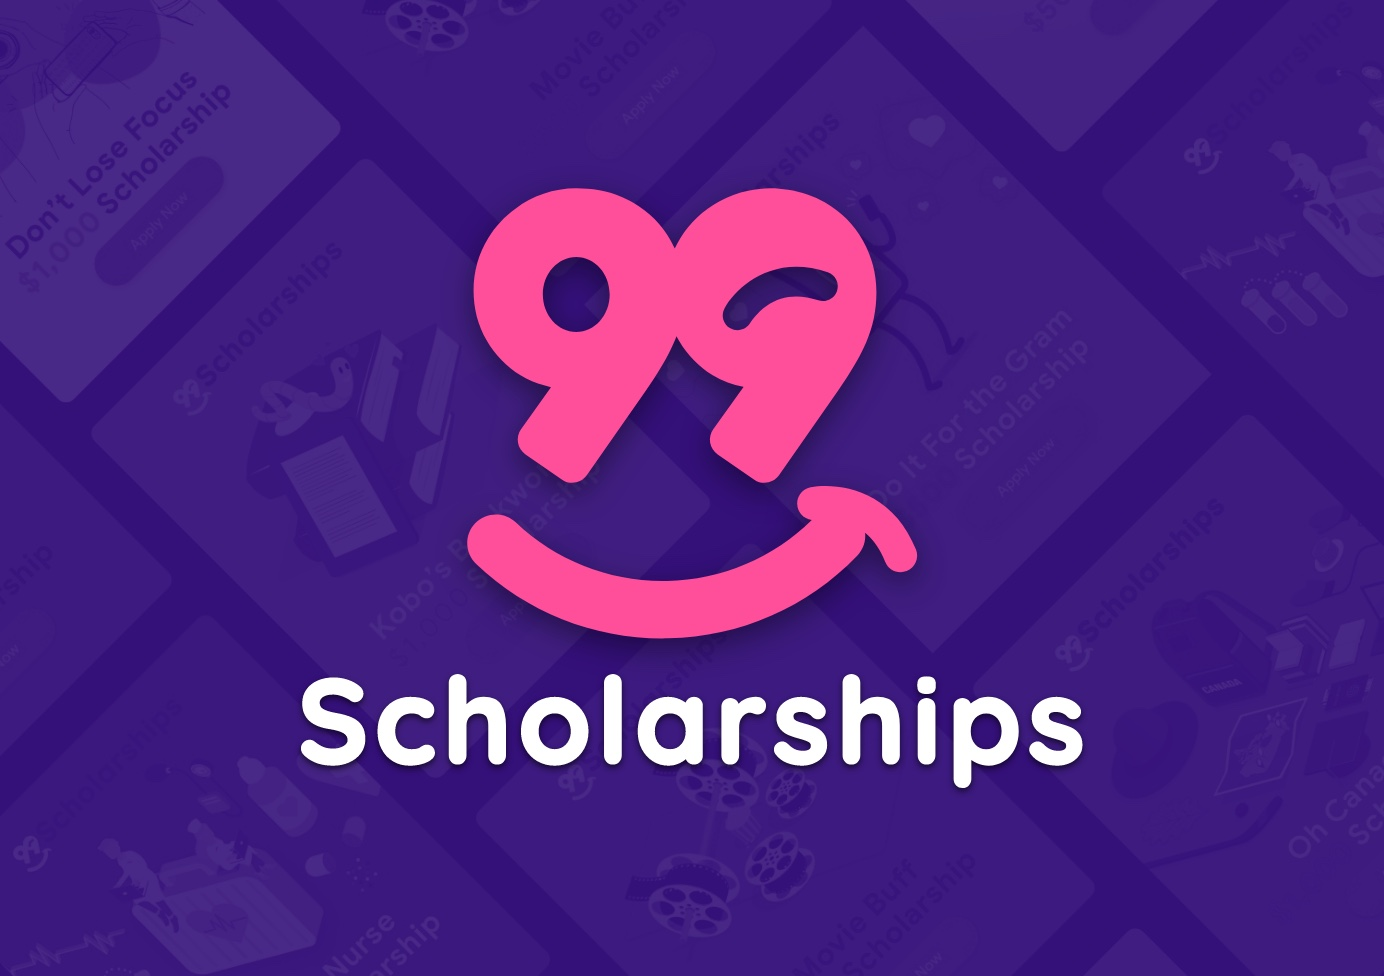 99 Scholarships-Hero